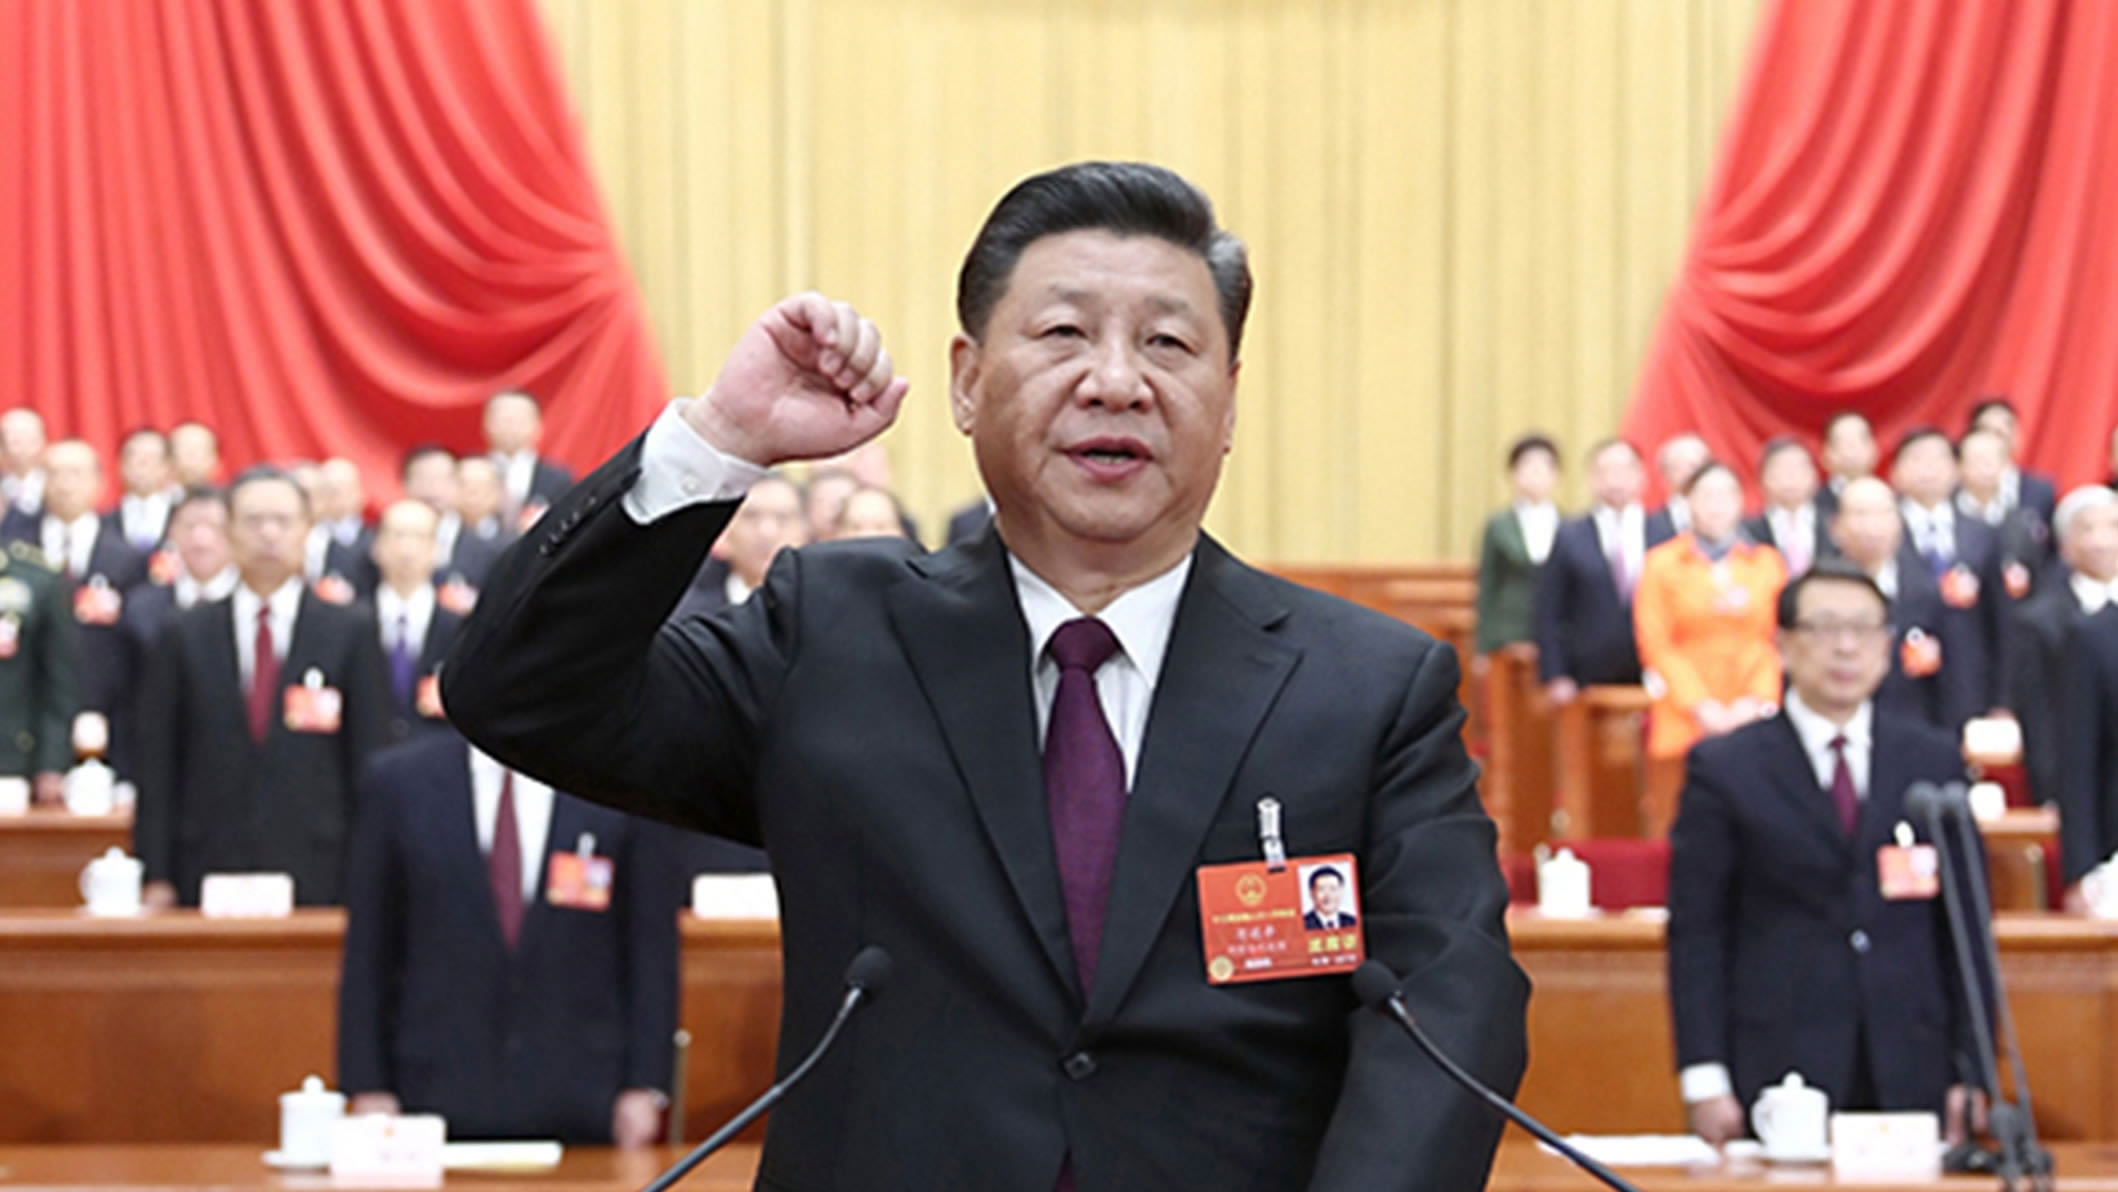 Xi Jinping elected Chinese president at NPC session